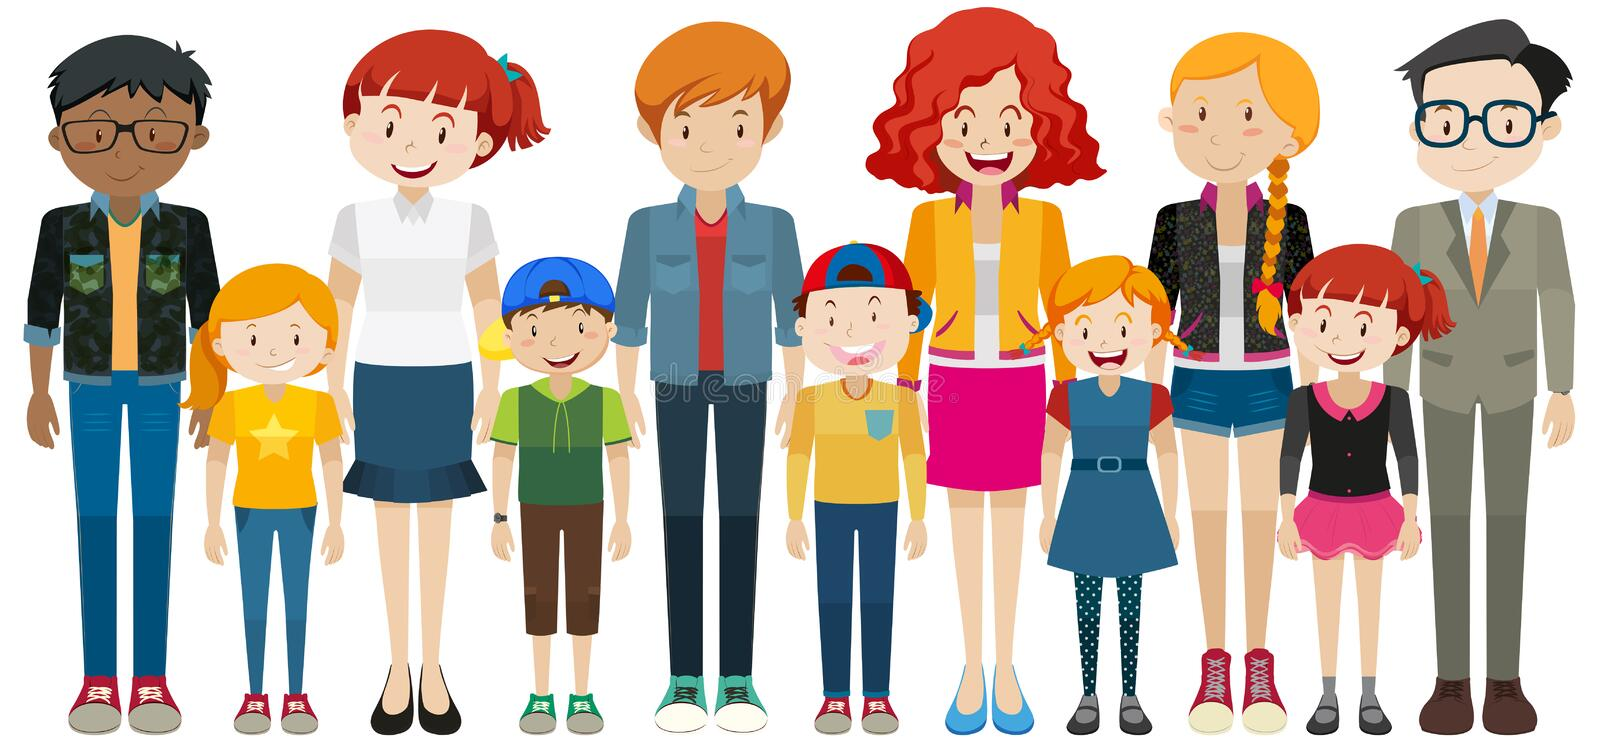 Children and adult standing royalty free illustration